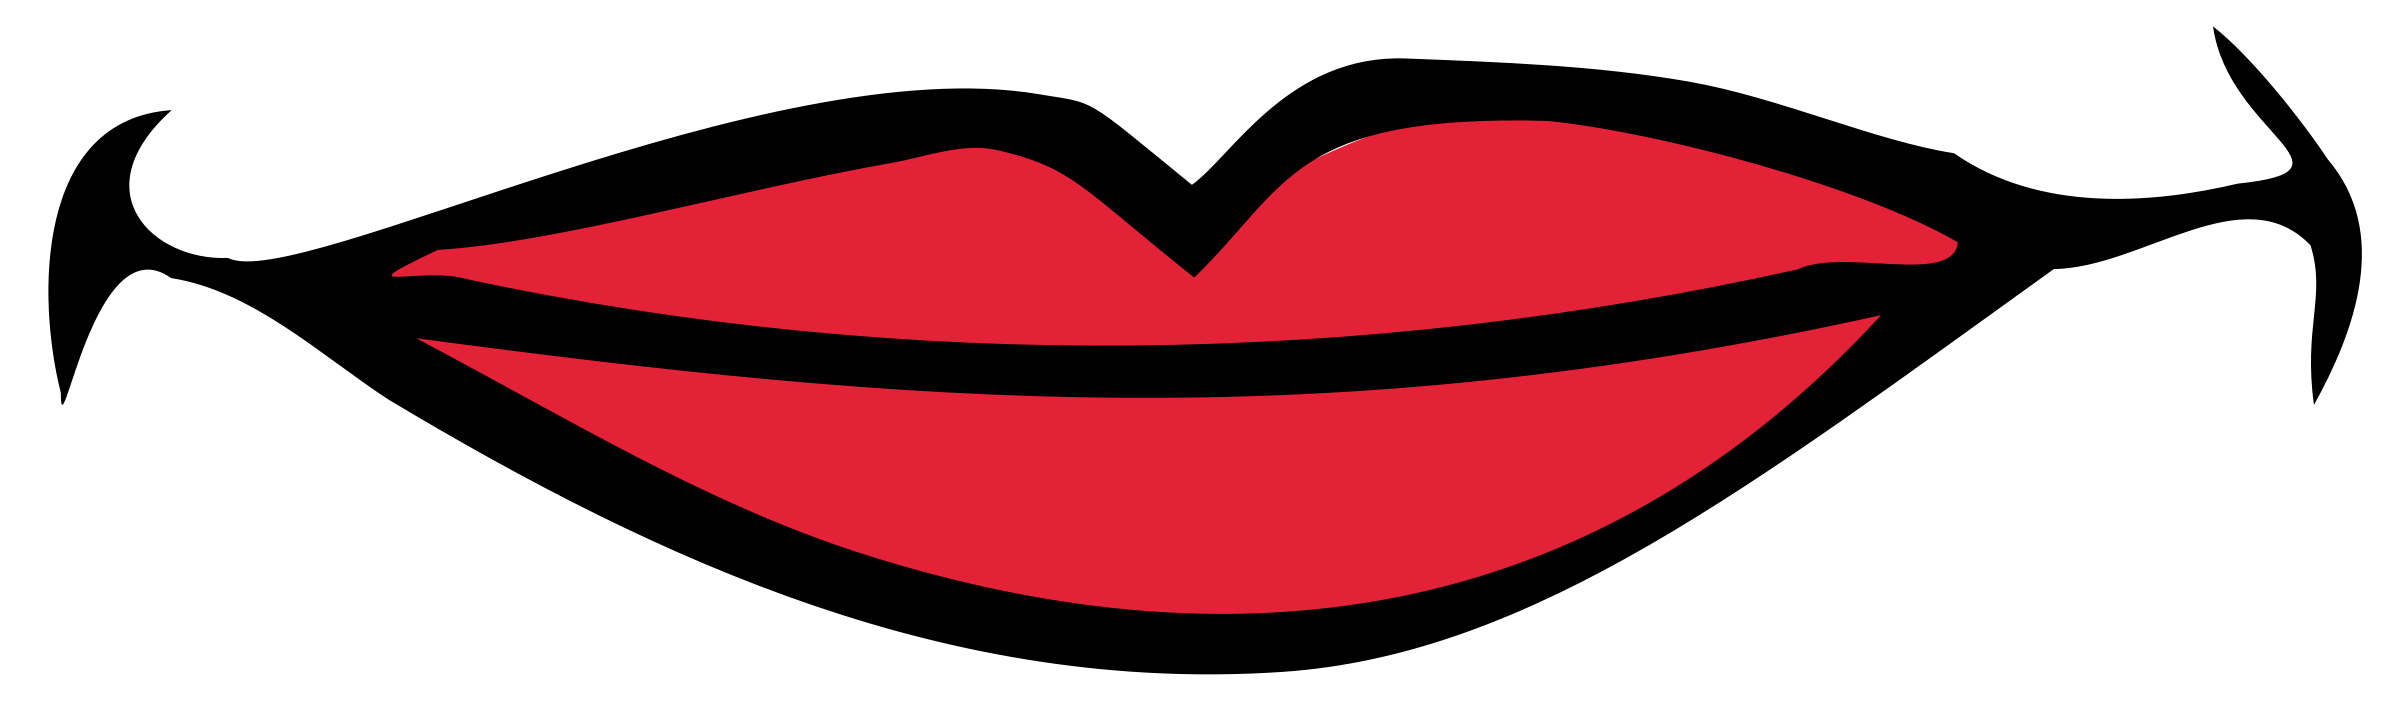 Smile Lips Clipart - Free Clipart Images